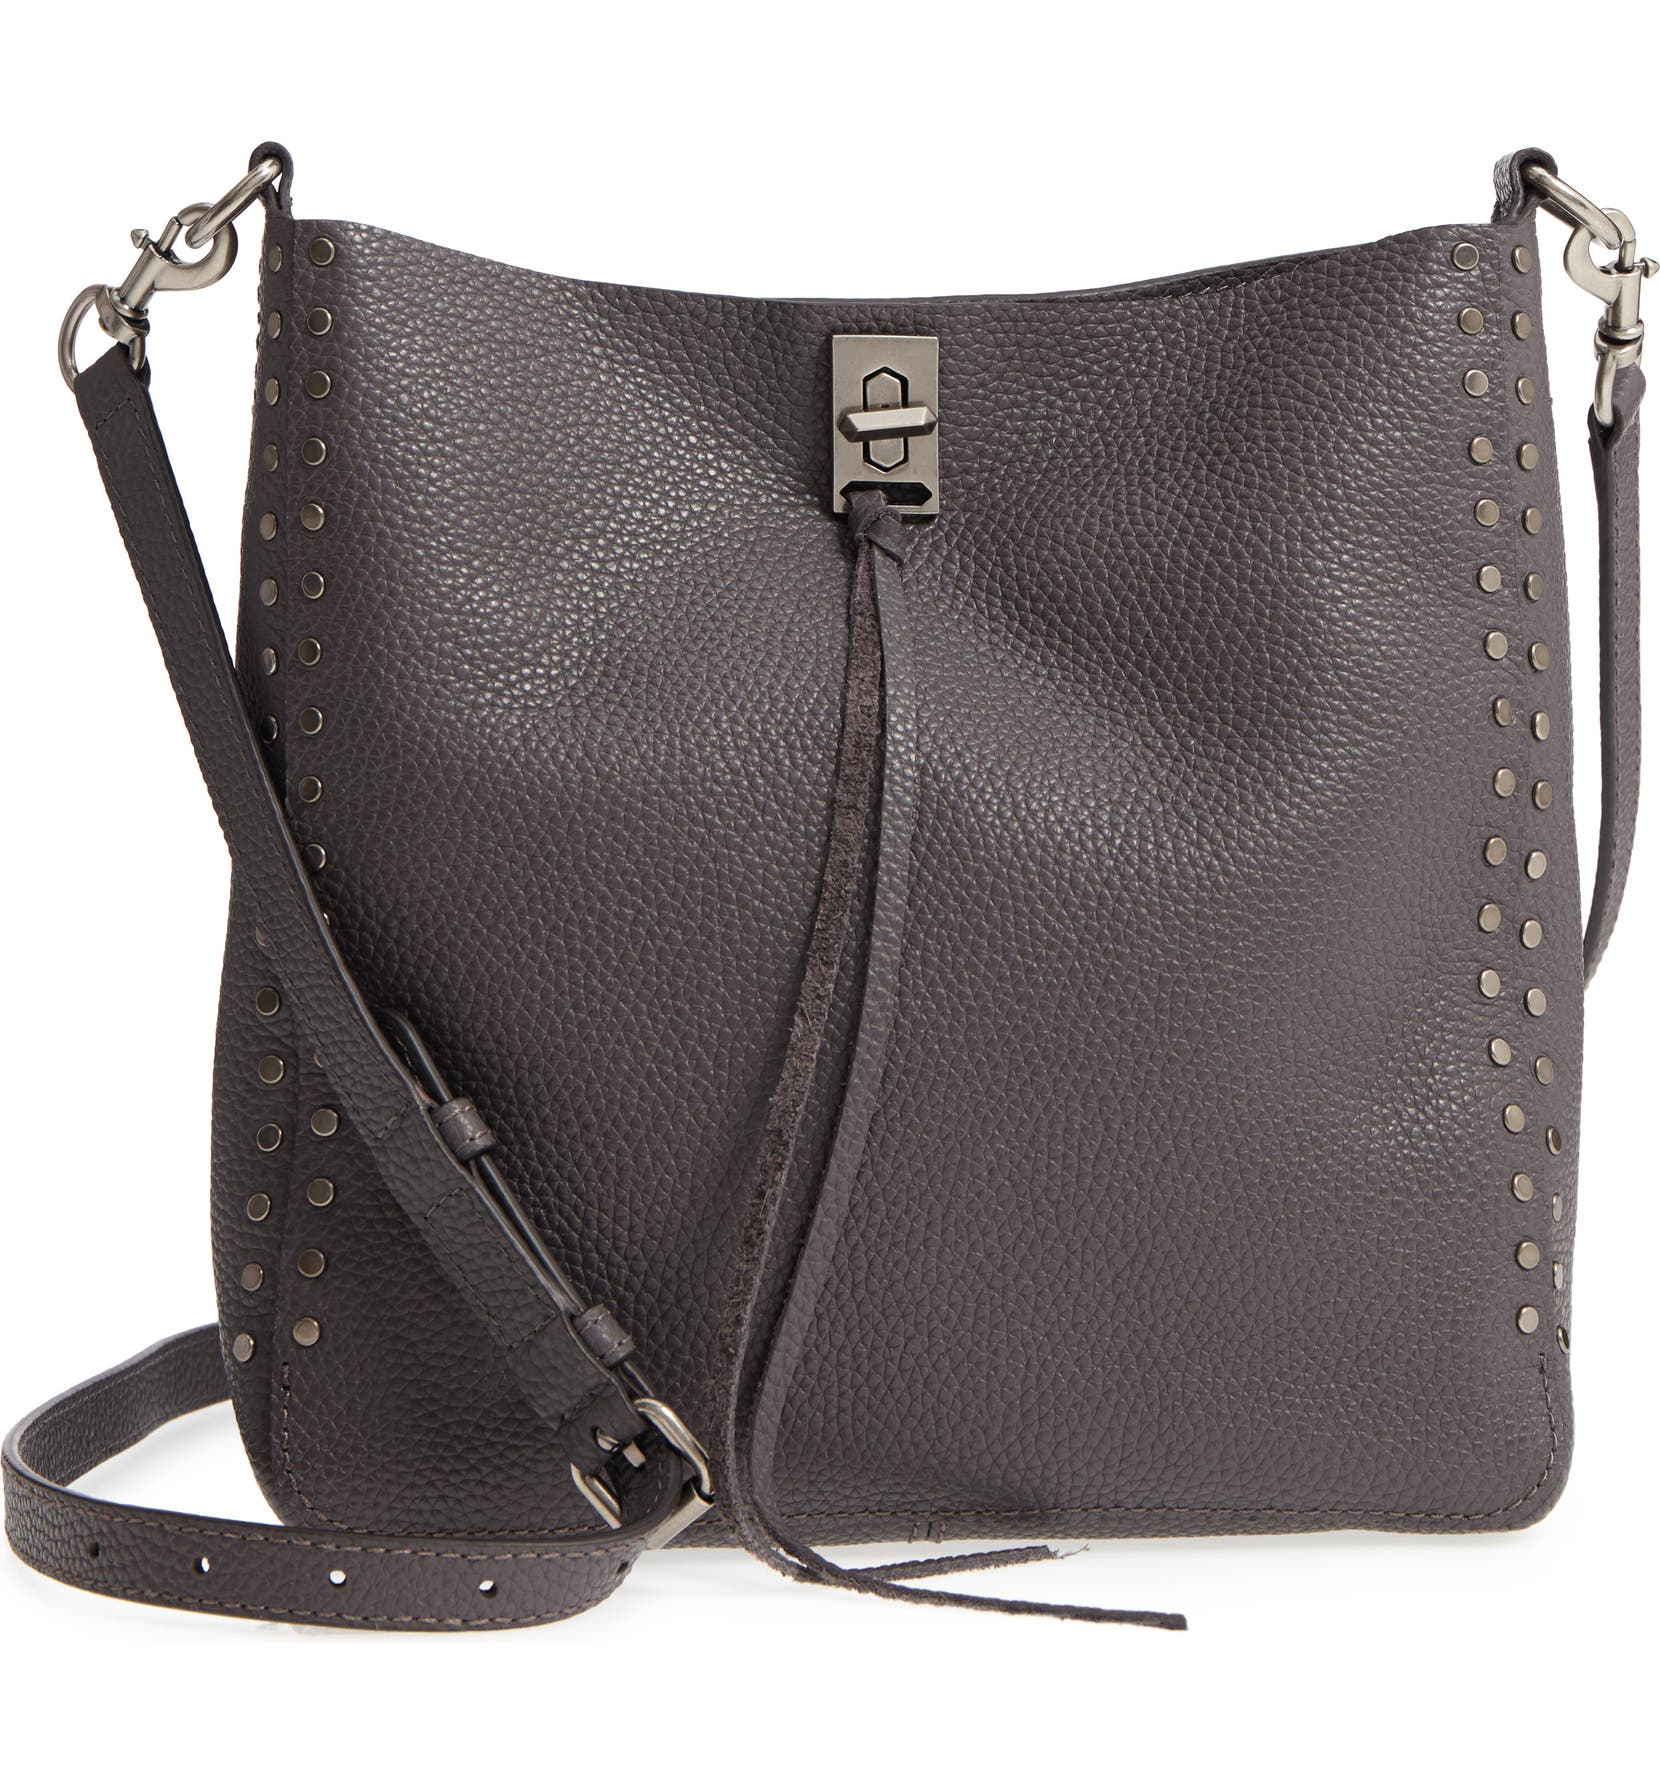 143d2fa5b2 Rebecca Minkoff Small Darren Leather Feed Bag